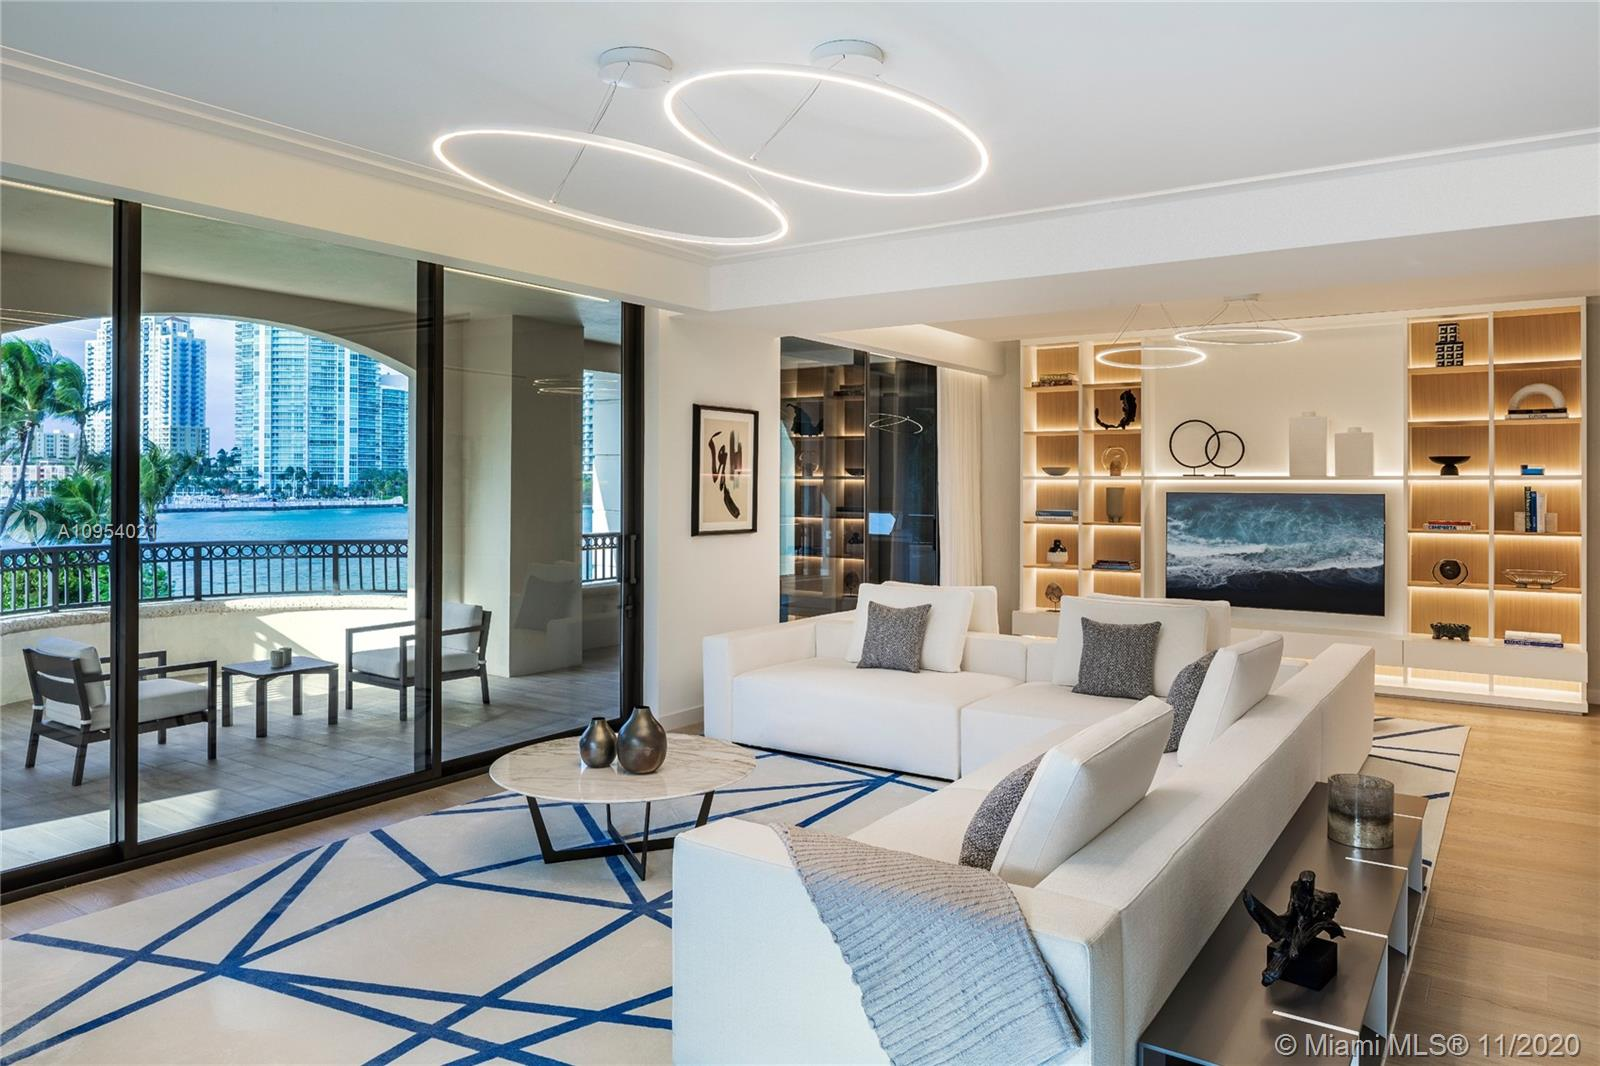 6800 Fisher Island Drive, Unit #6821 Luxury Real Estate